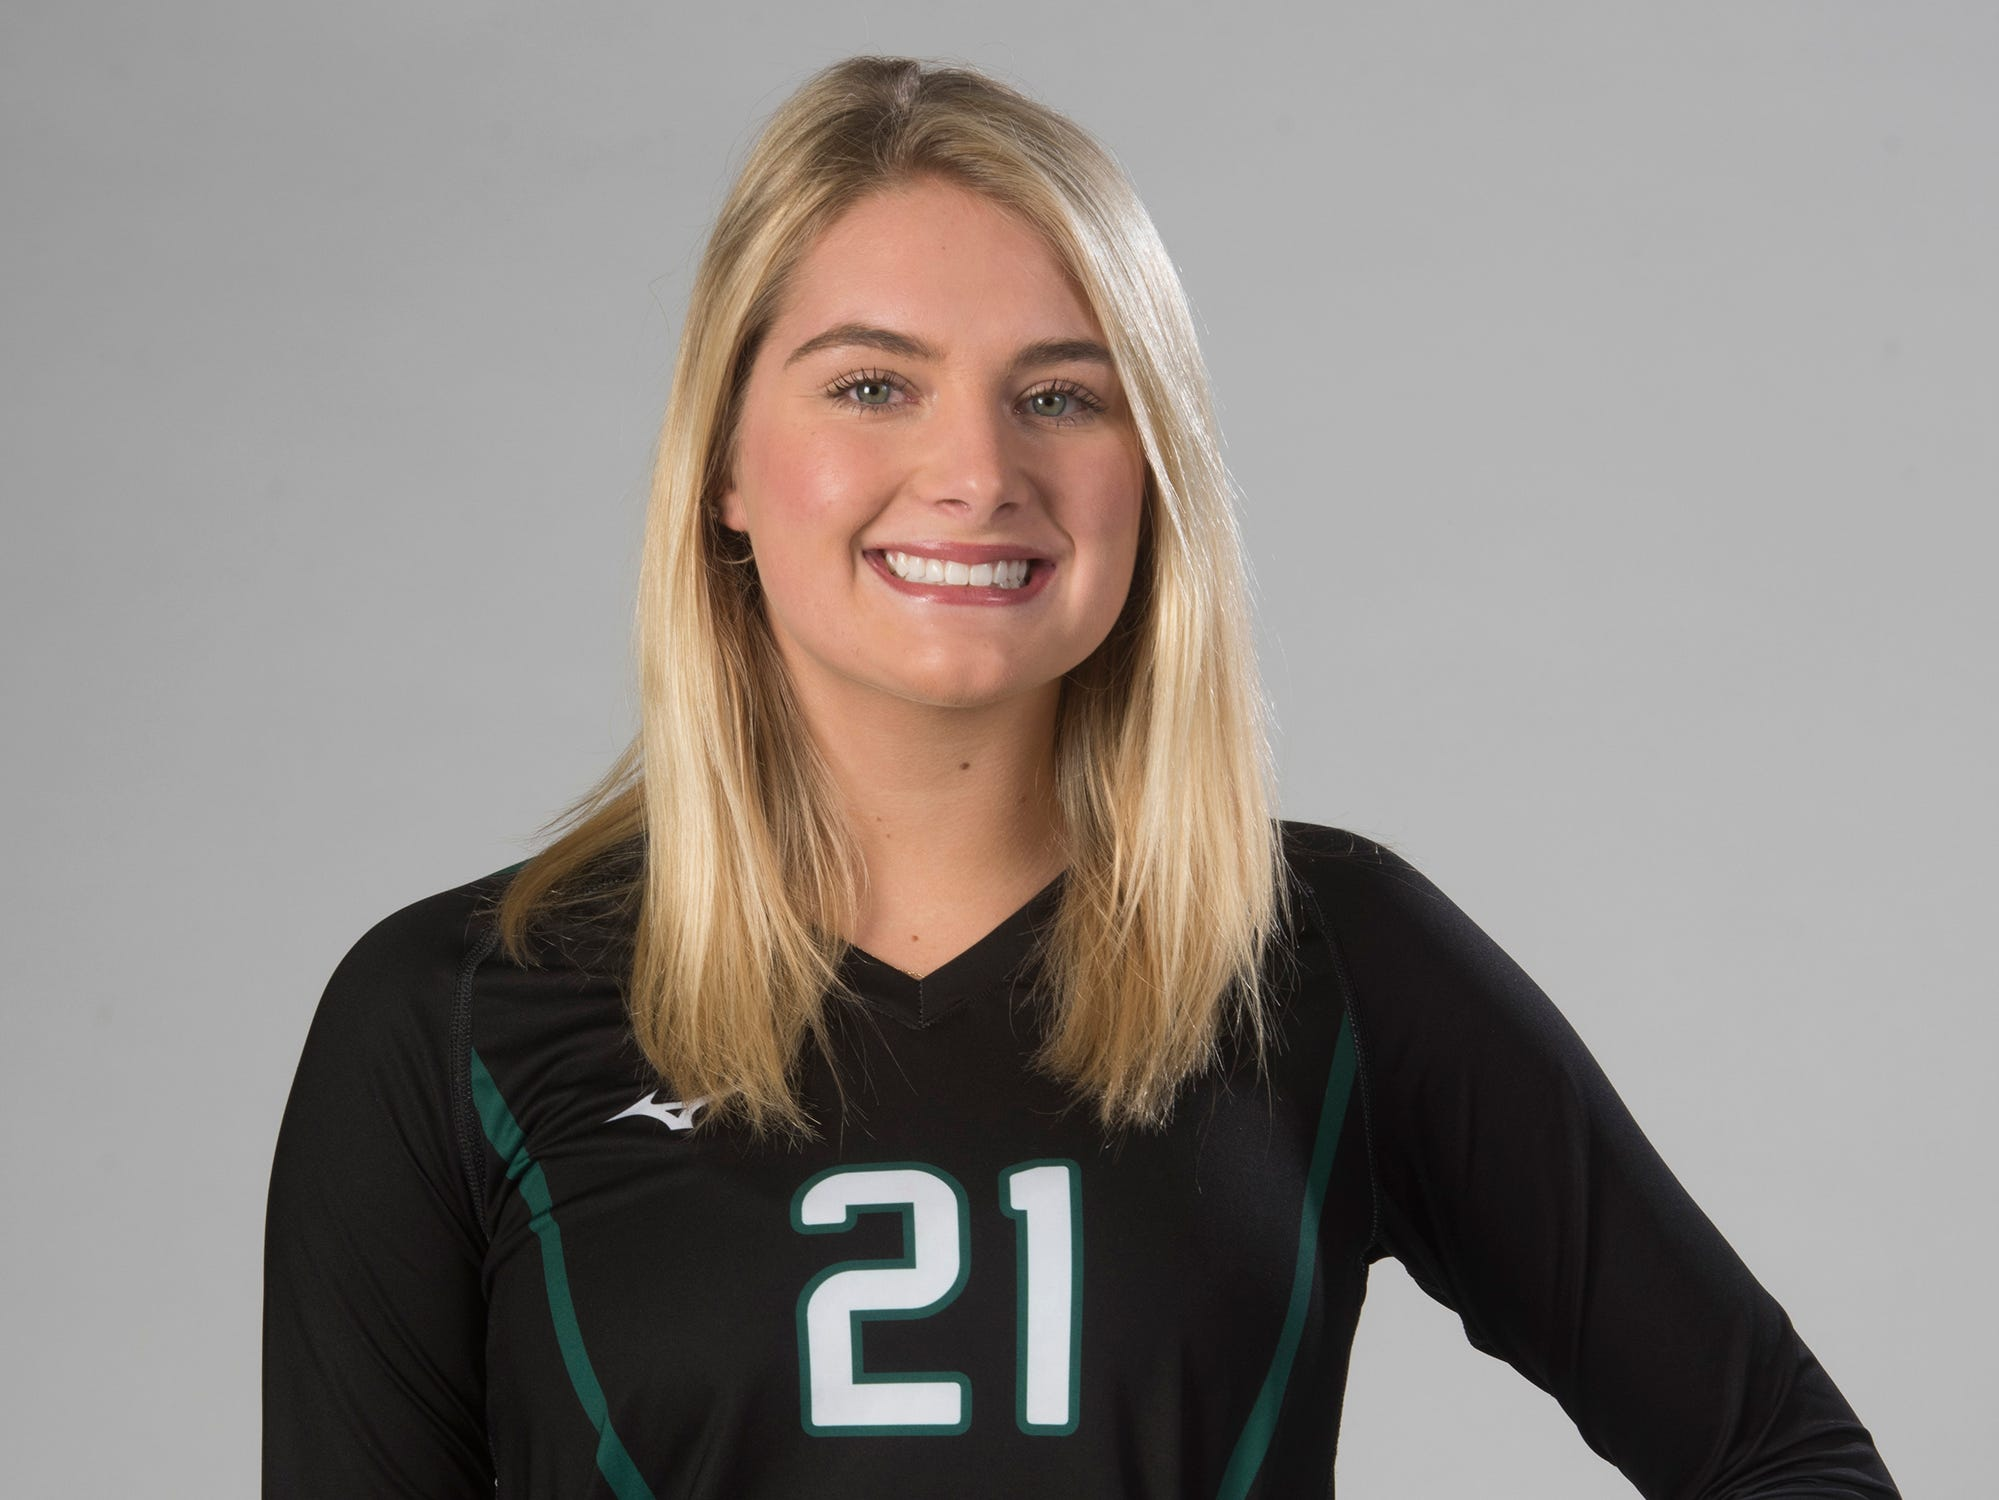 Introducing the 2018 PNJ All-Area Volleyball Team